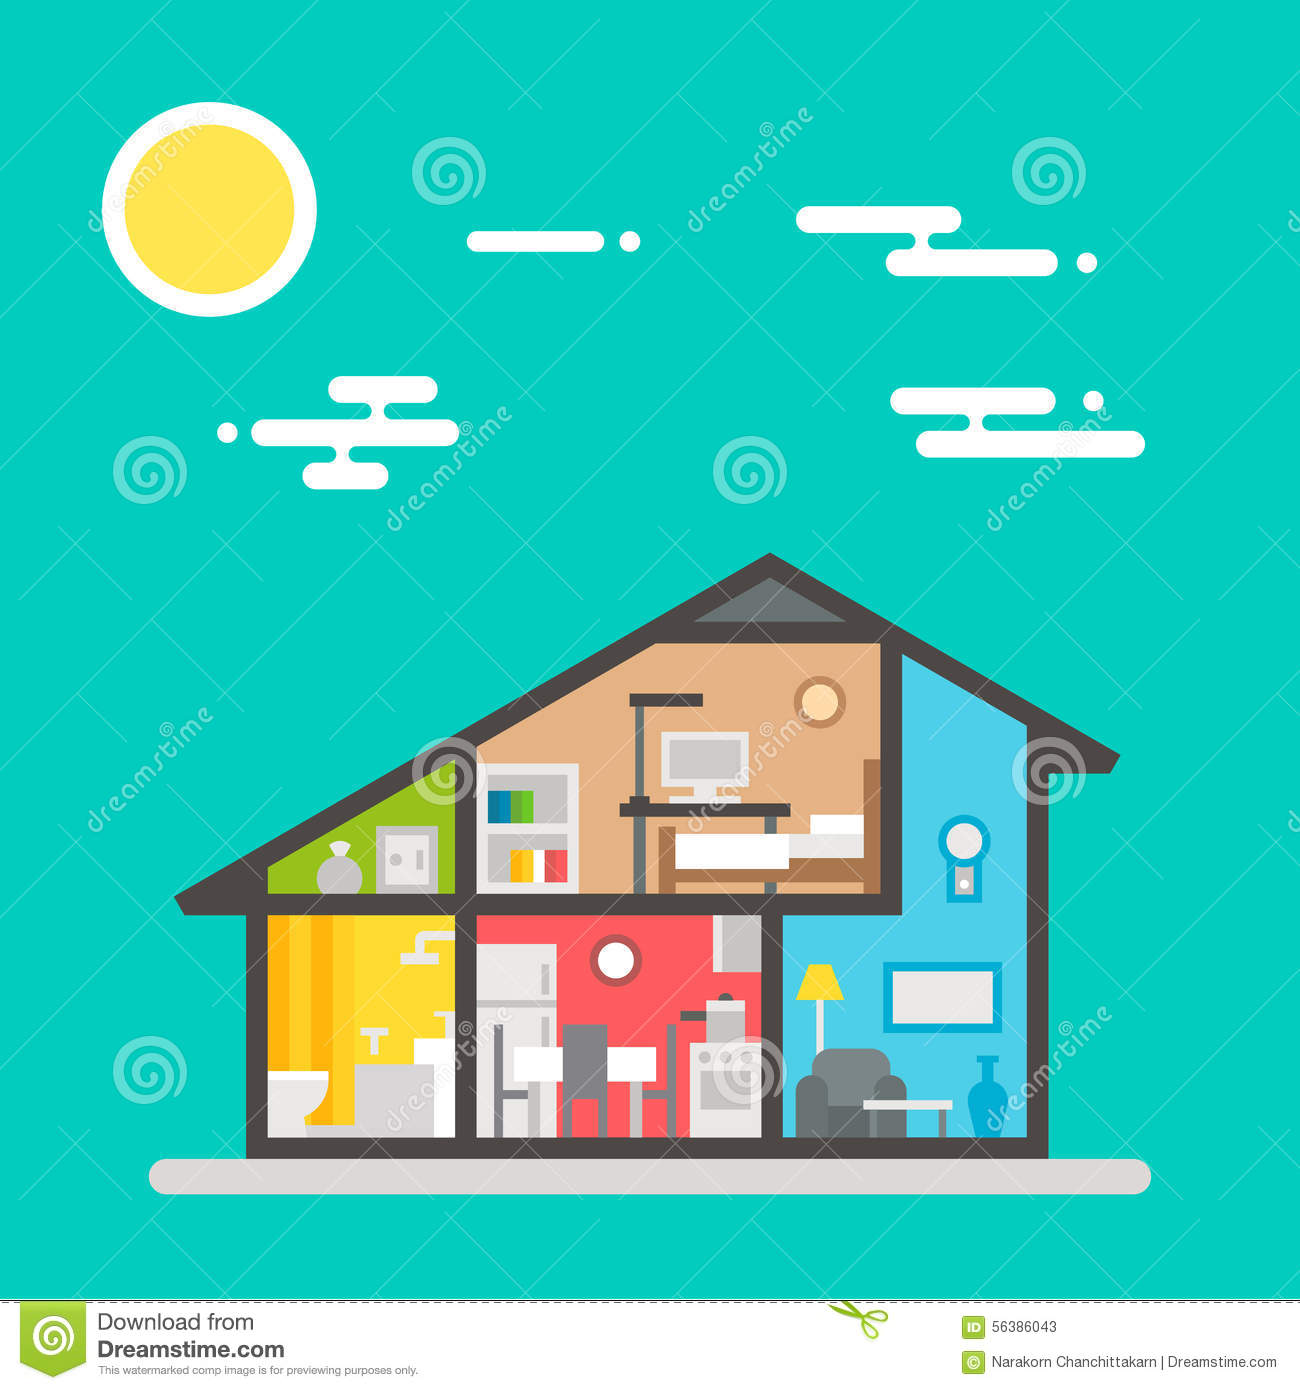 Flat Design Of House Interior Stock Vector Illustration Of Room Color 56386043